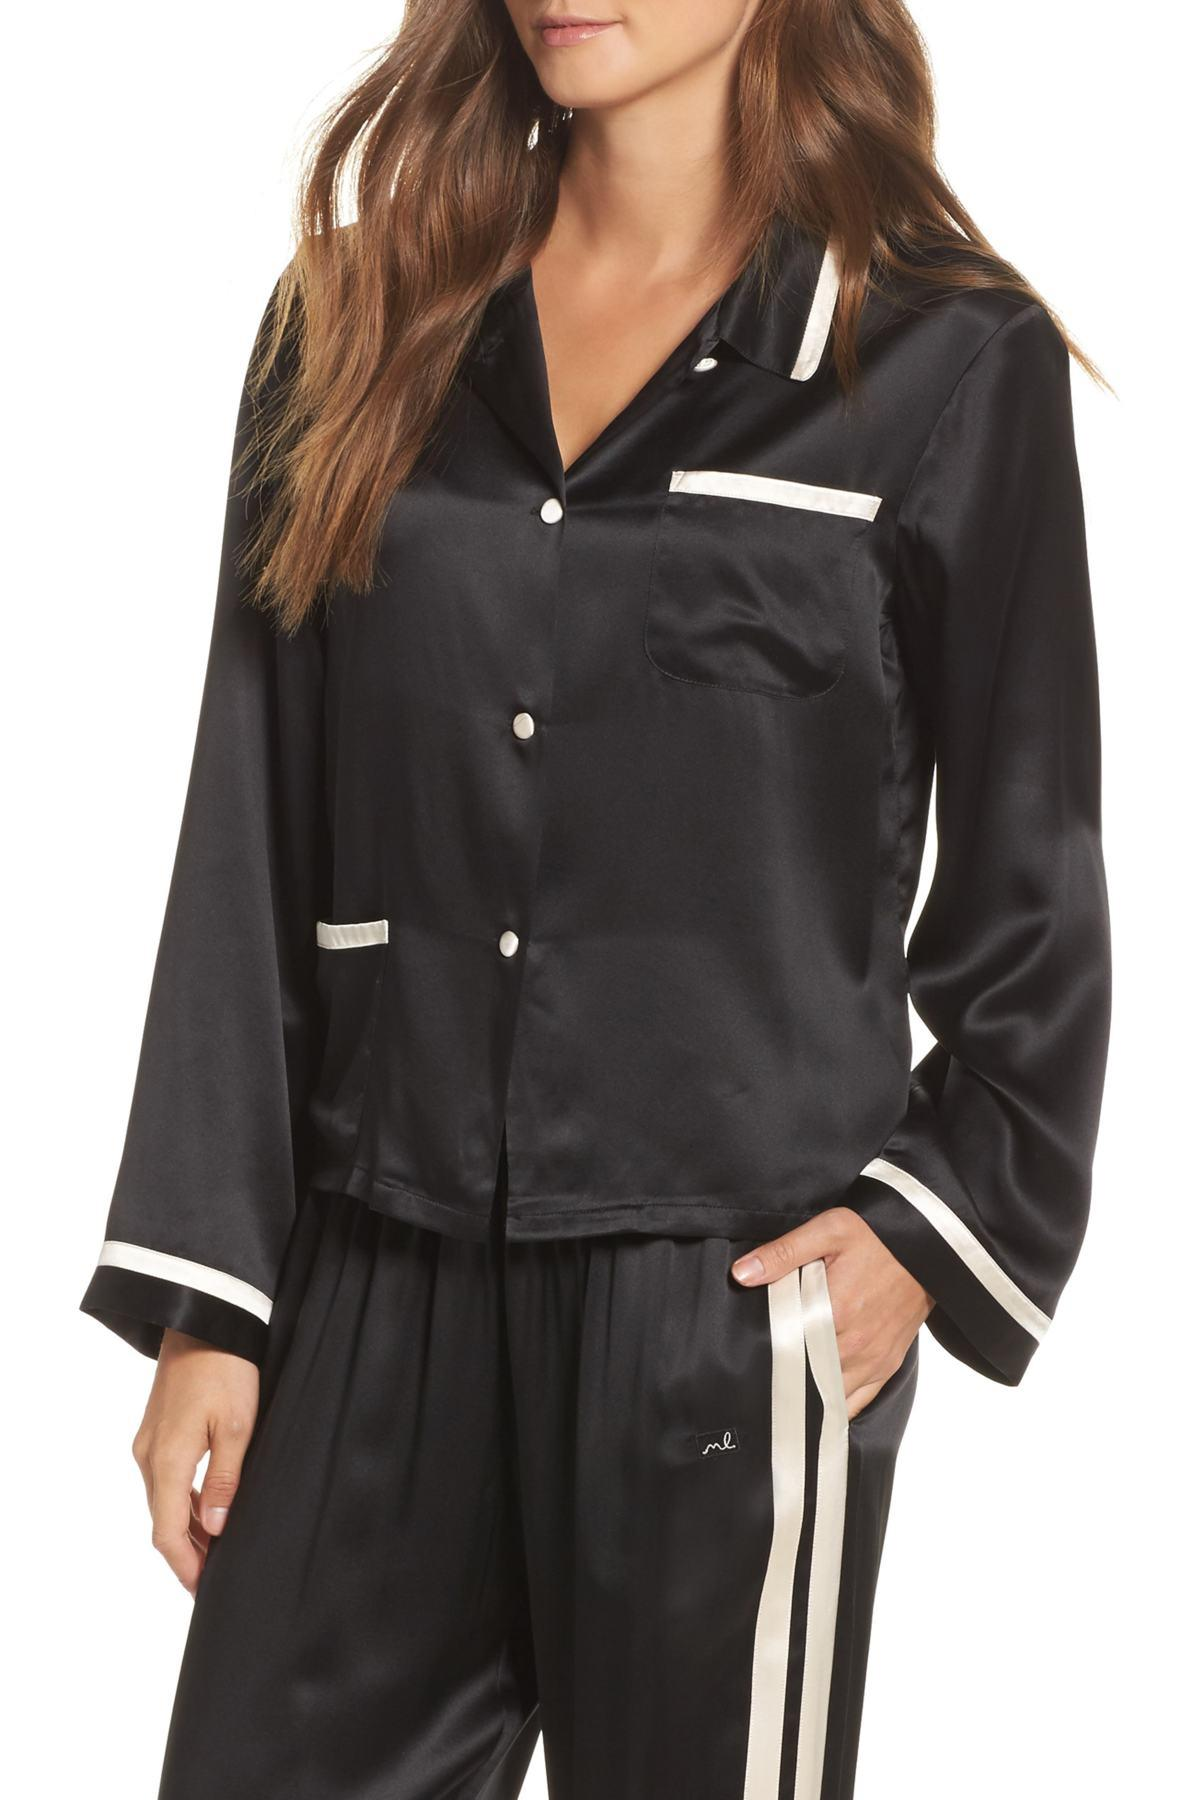 Lyst - Morgan Lane Ruthie Silk Charmeuse Pajama Top in Black ee7e8d556